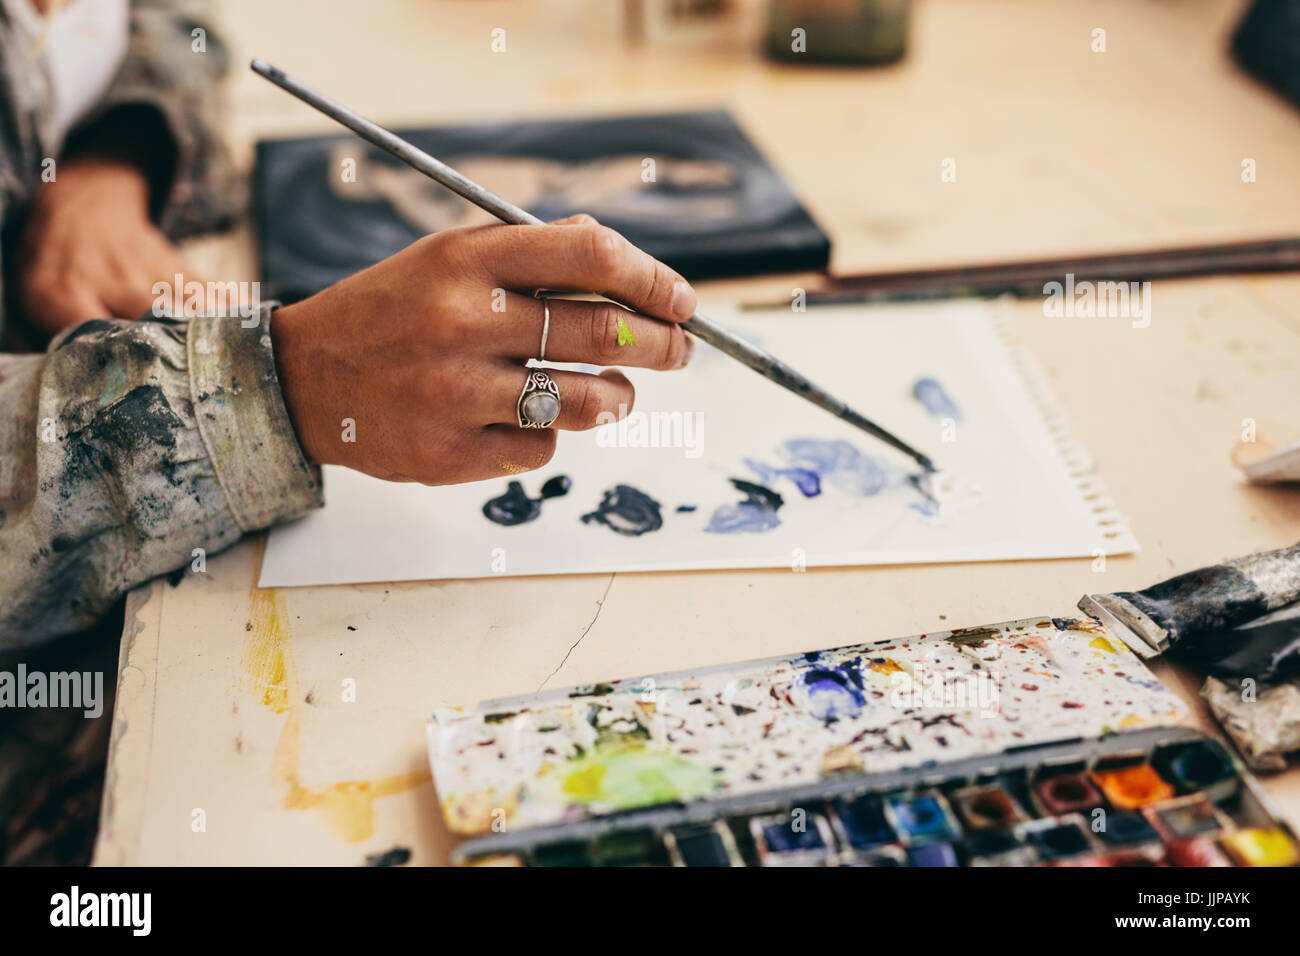 Close up of female artist's hand holding brush and mixing colors on paper. Cropped shot of woman painter working - Stock Image